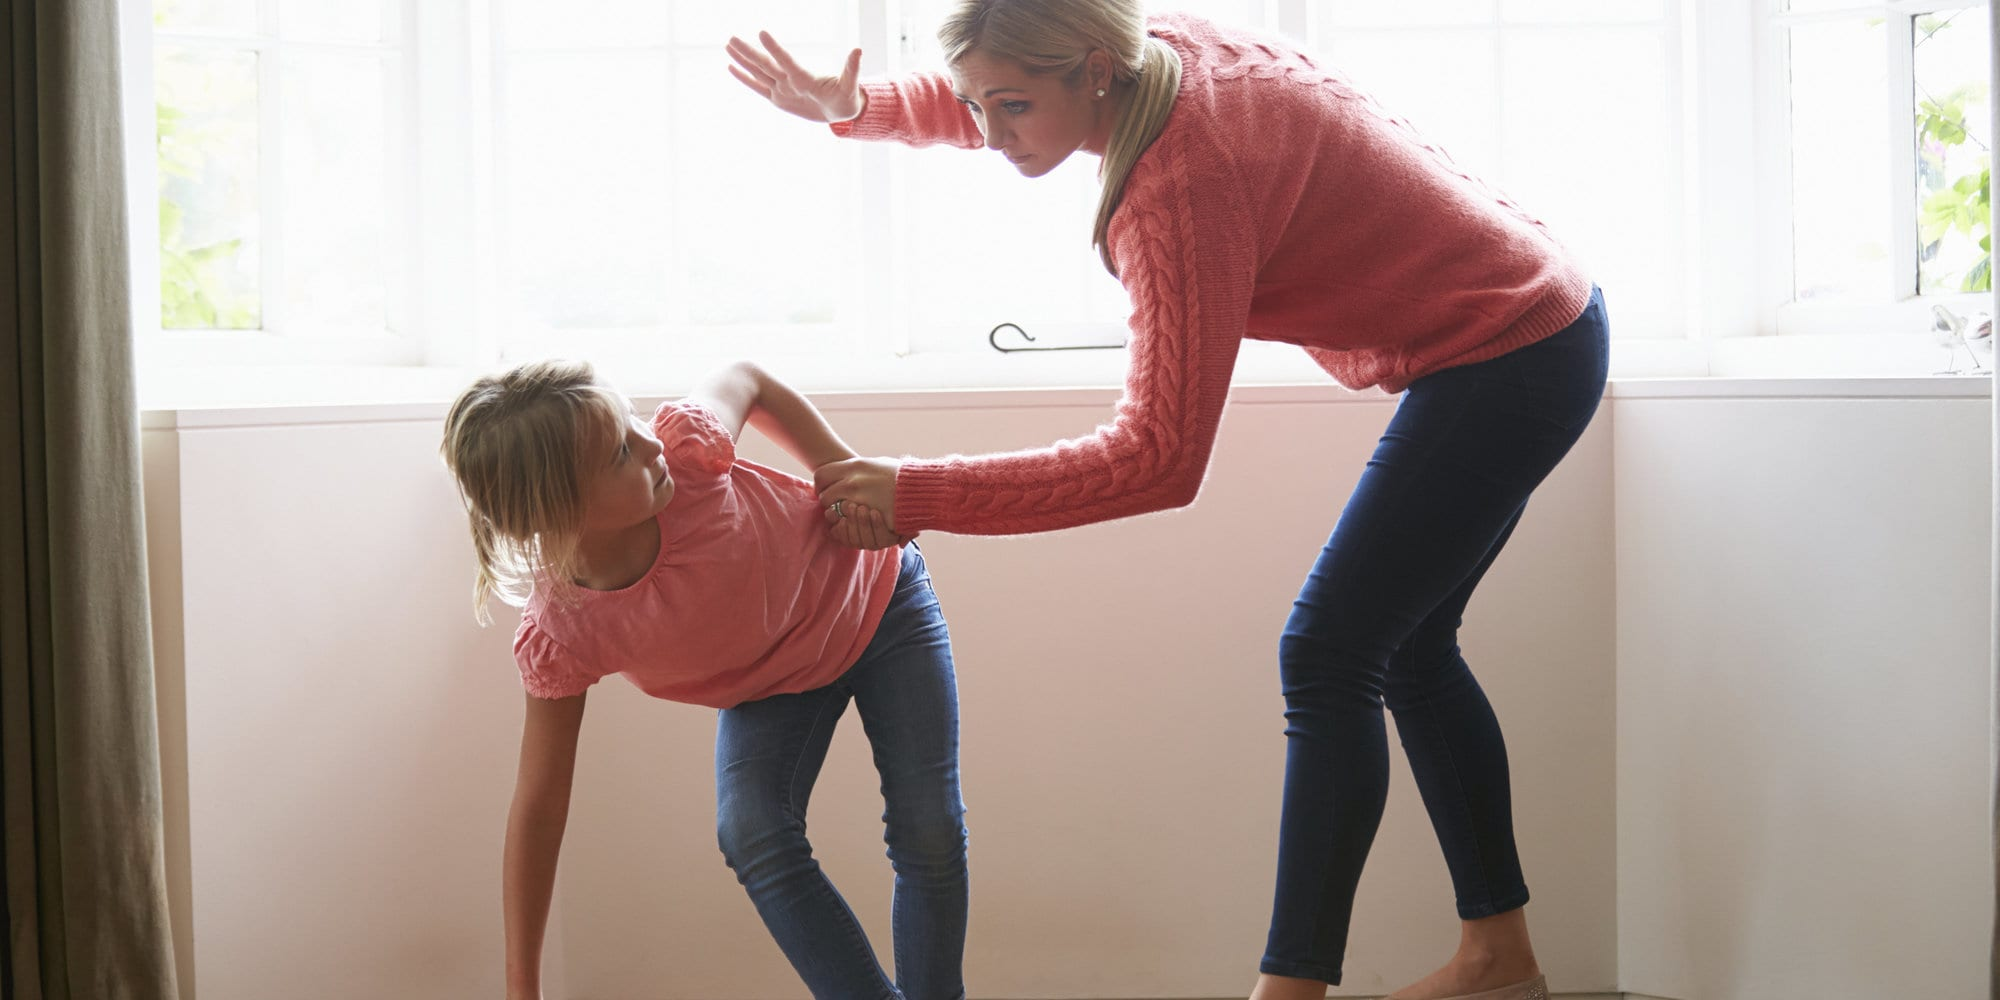 spanking can lead to child abuse